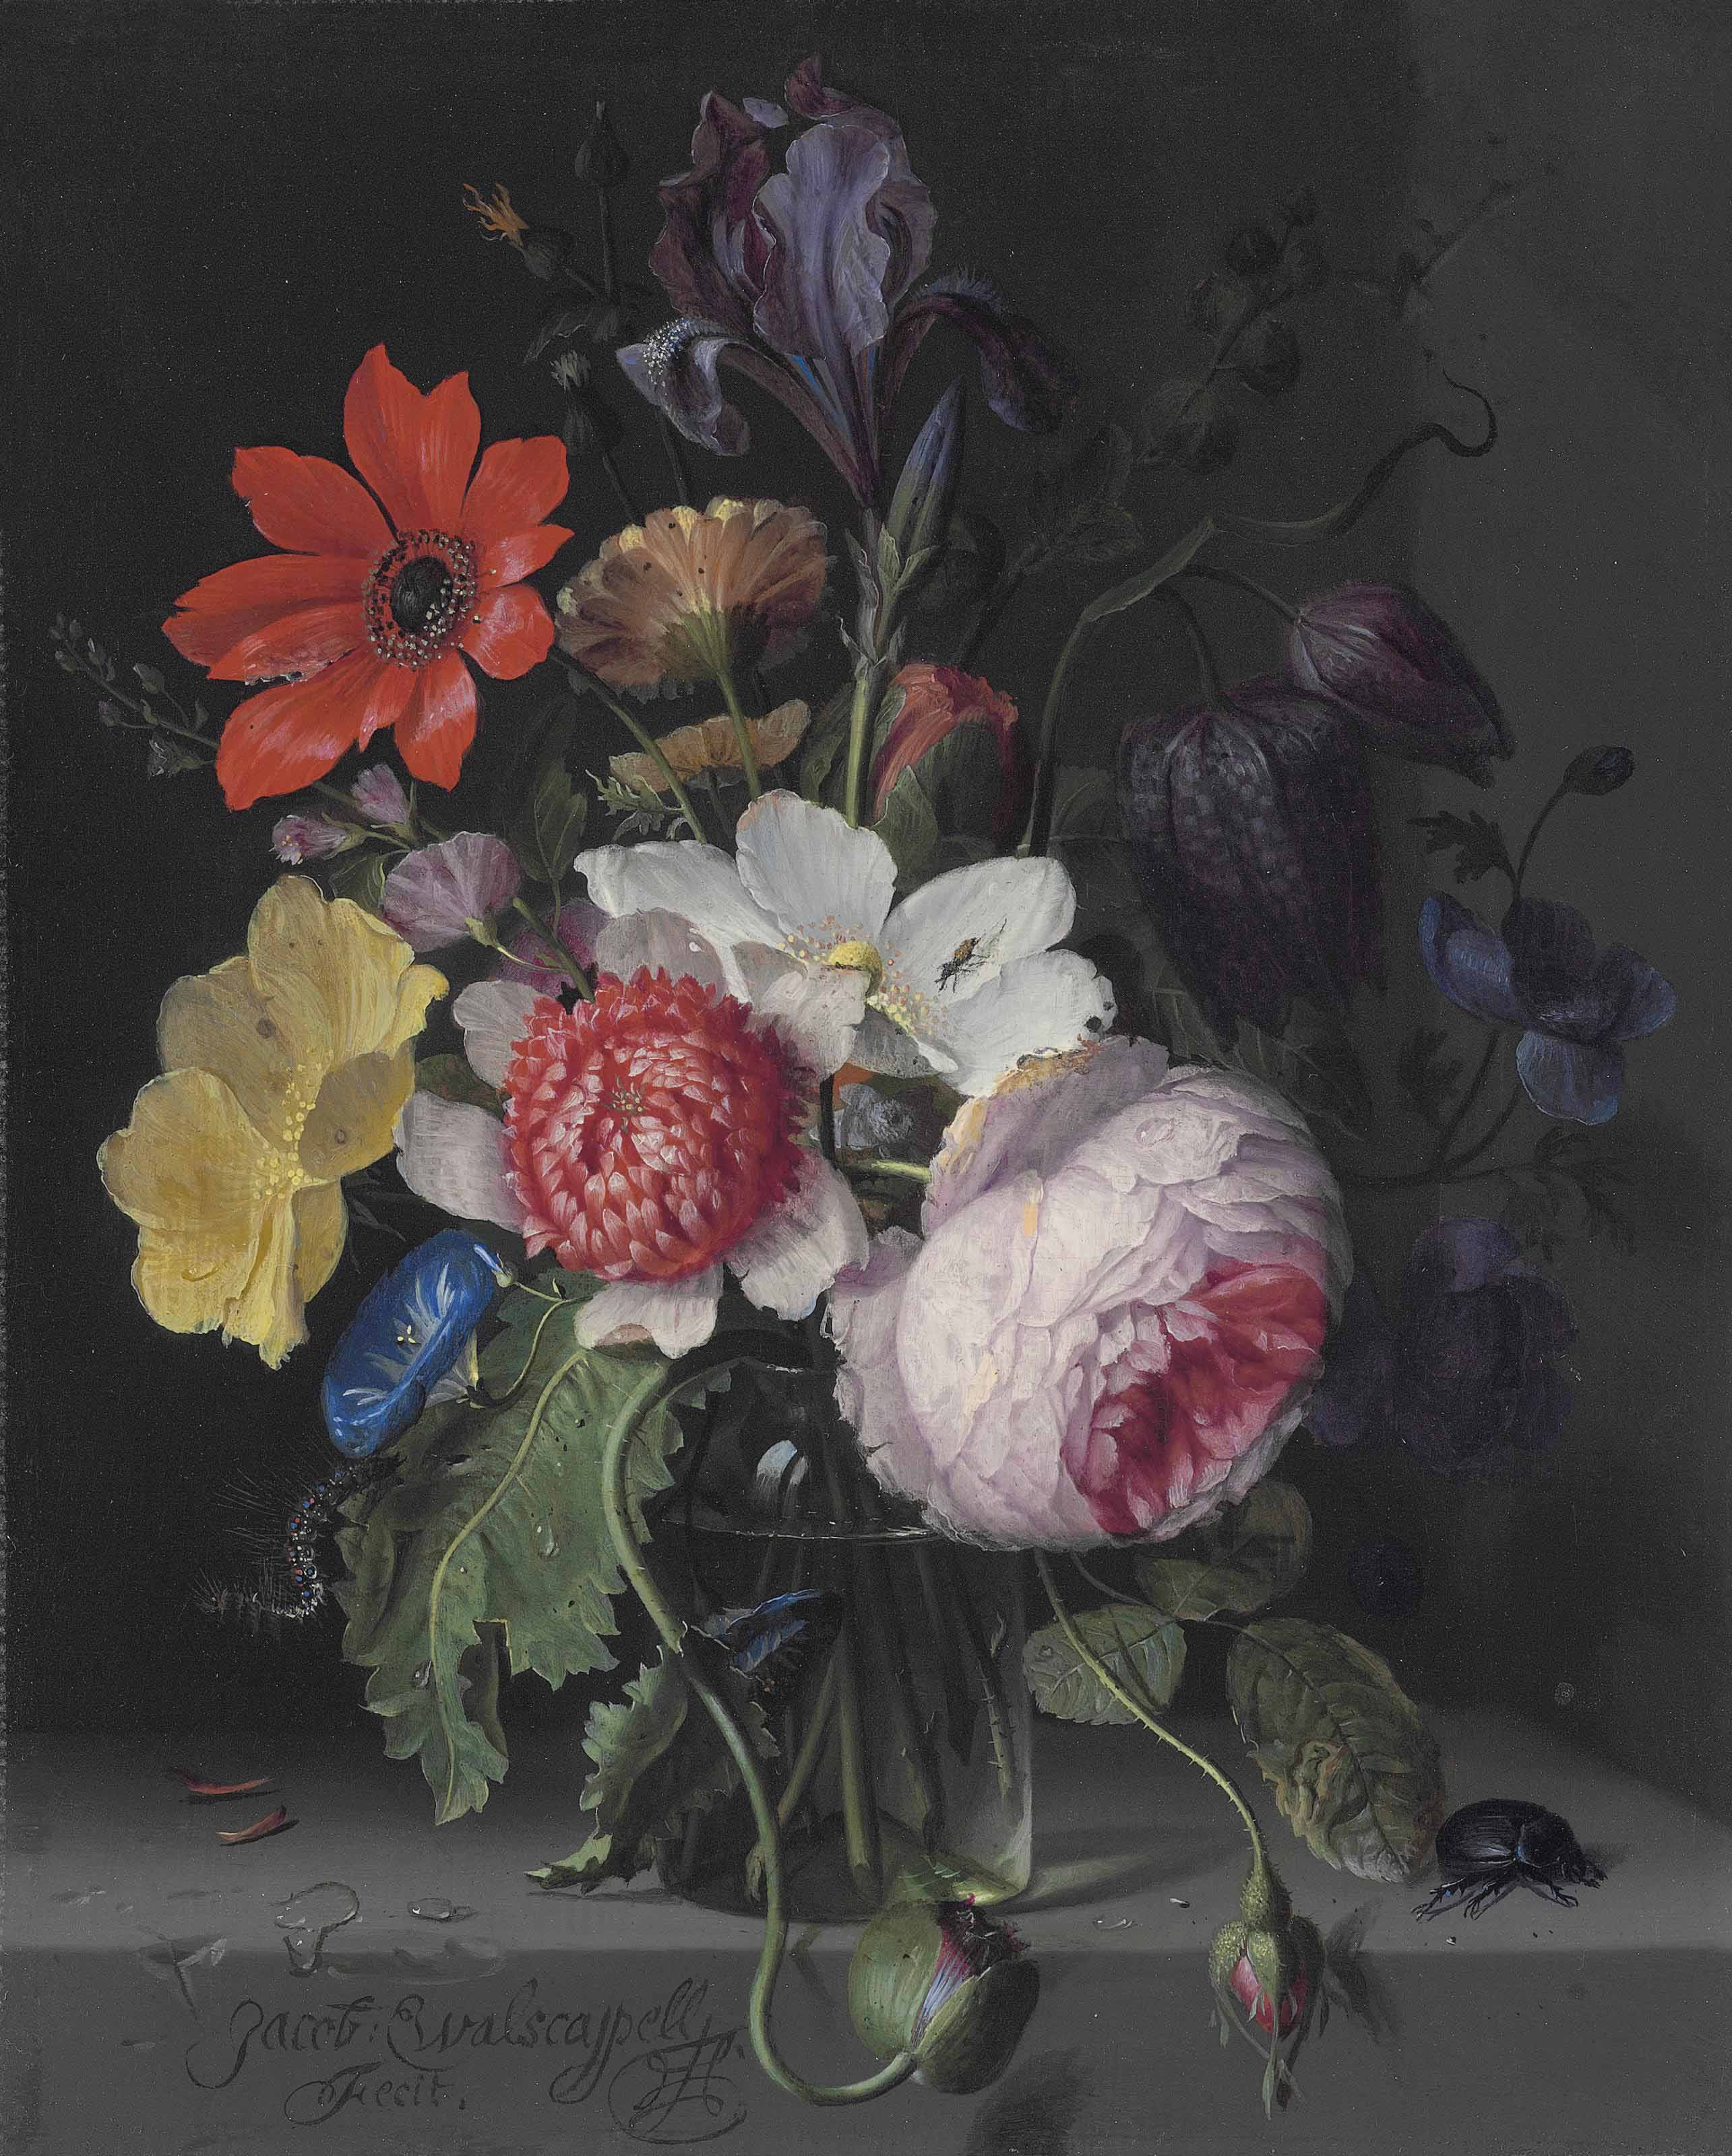 A peony, an iris, a poppy, anemones, morning glory and other flowers, in a glass vase, with a caterpillar, a beetle and other insects, on a stone ledge